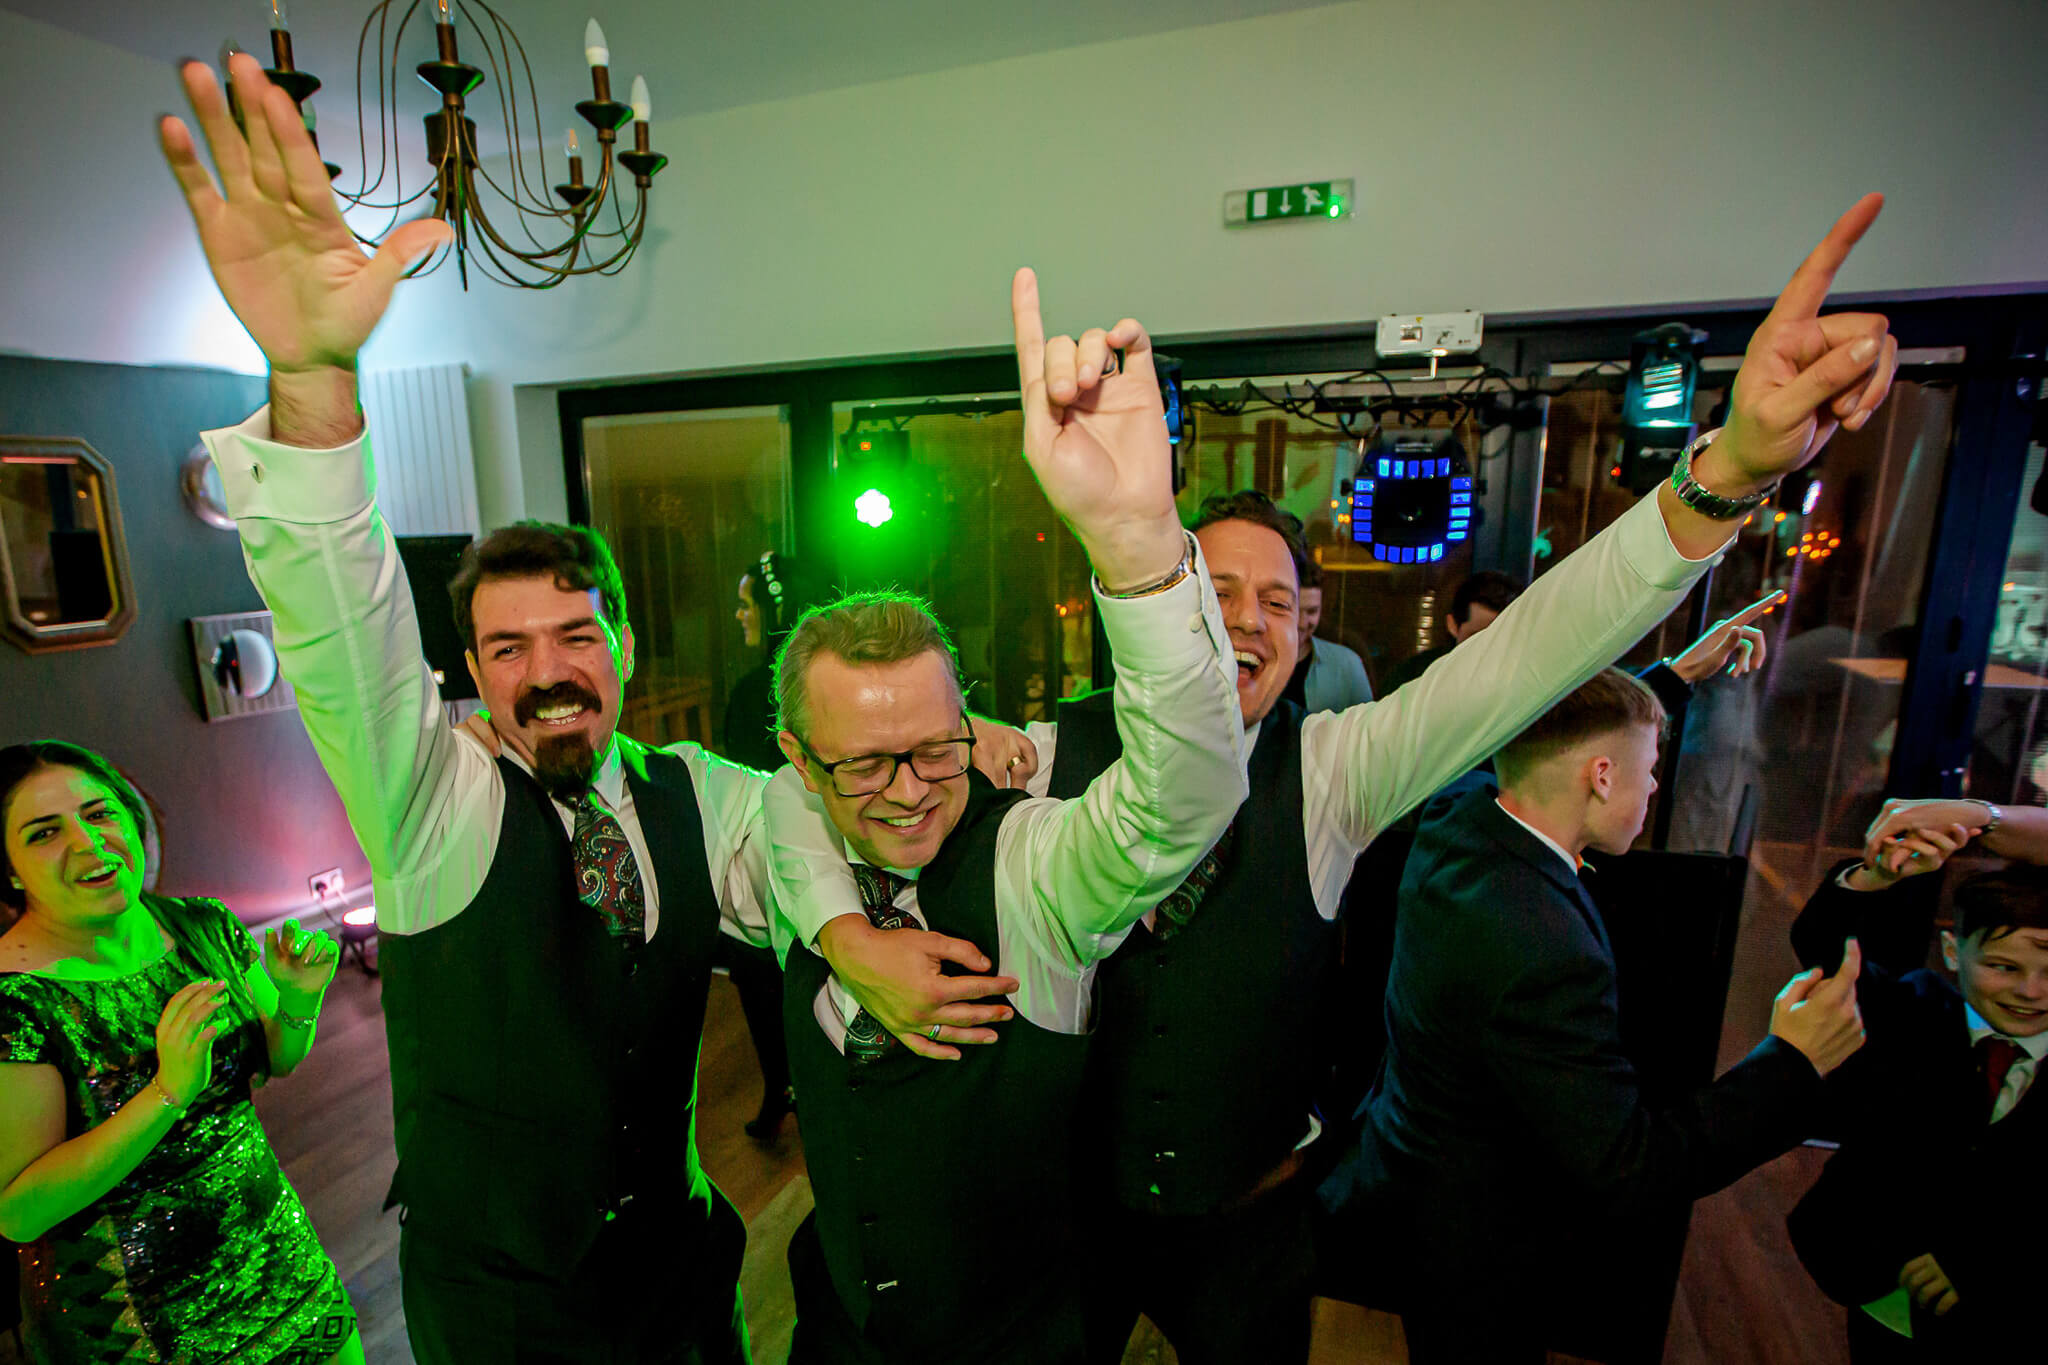 groomsmen-wedding-reception-dancing-st-johns-litchfield-stanbury-photography